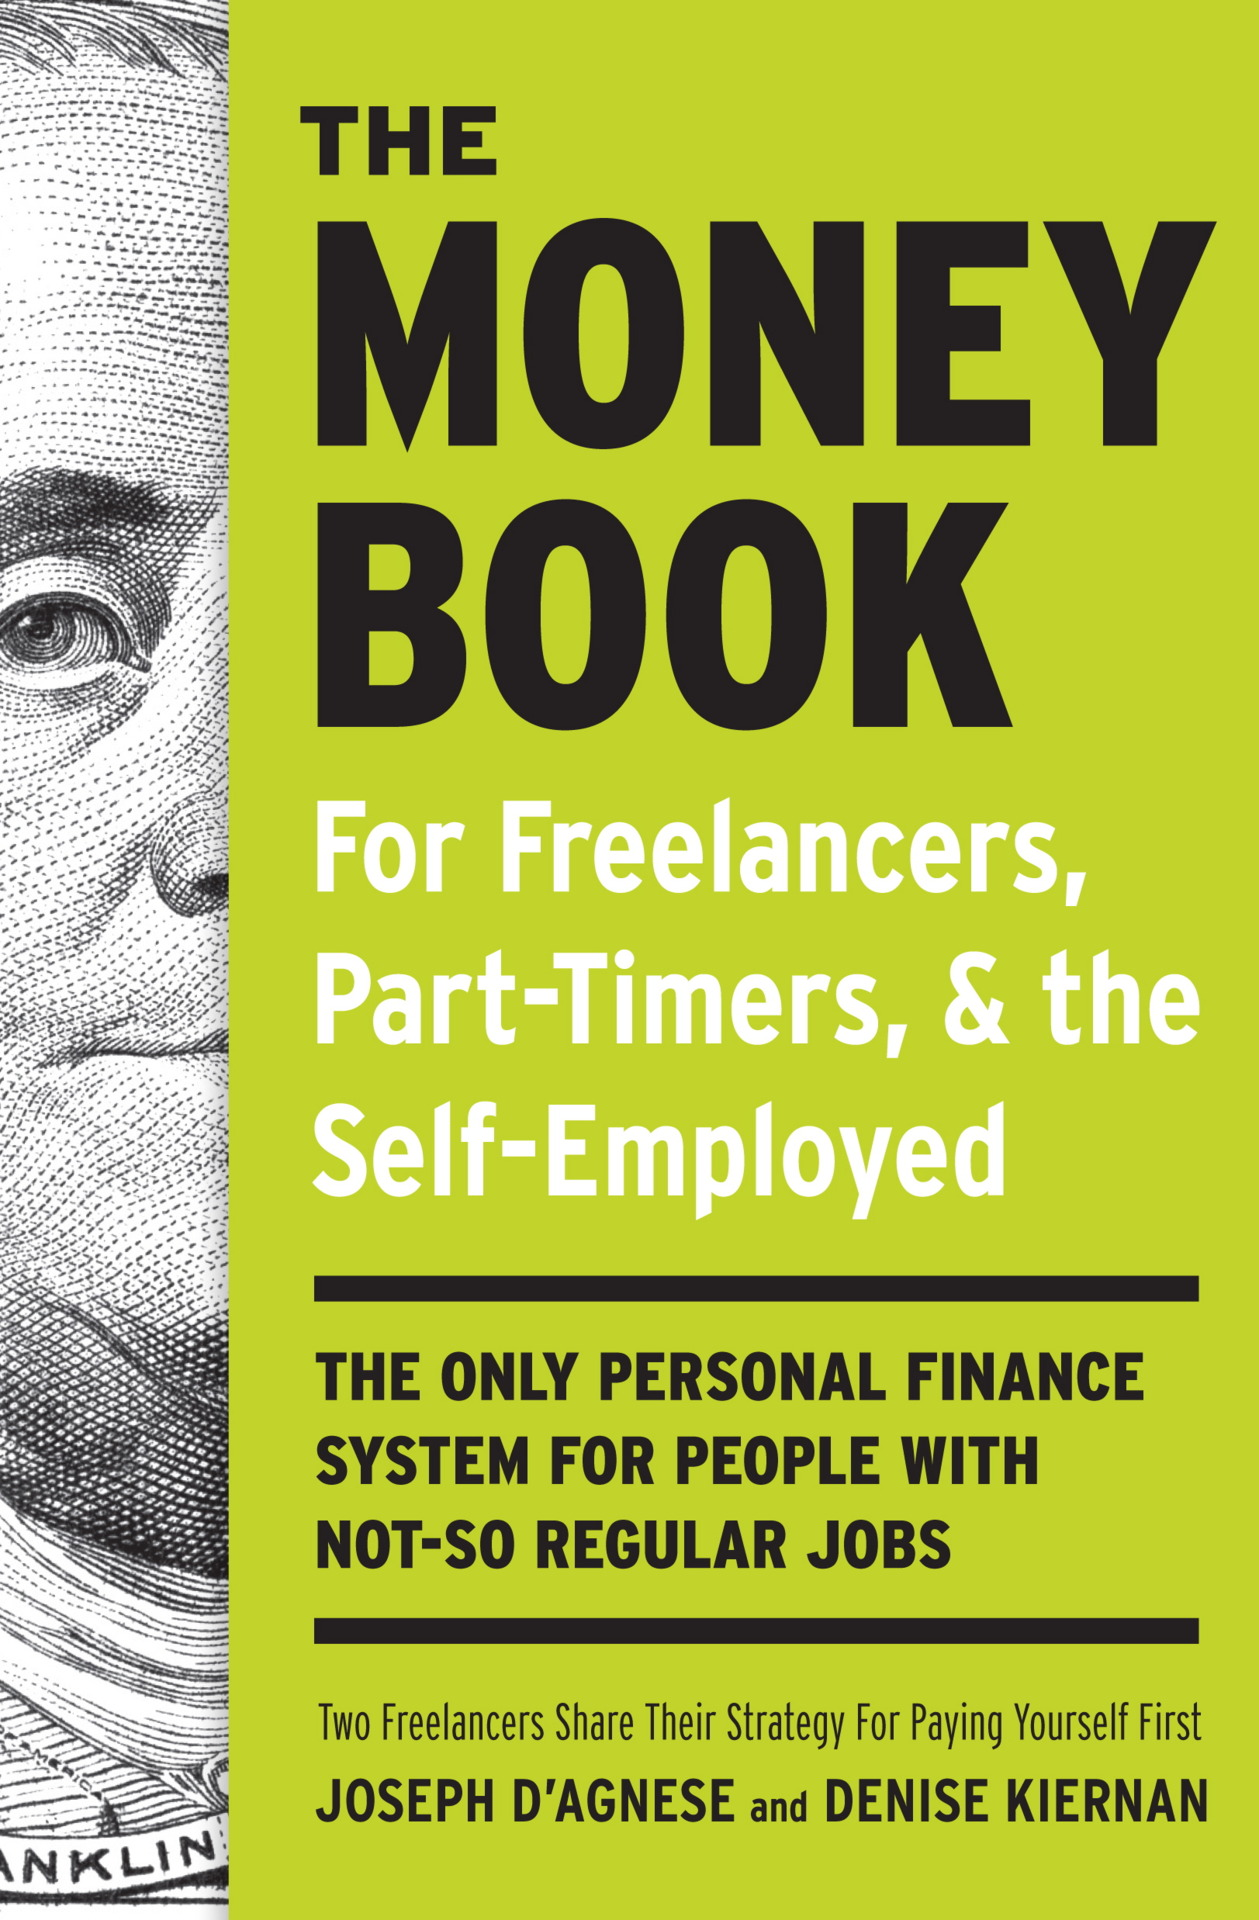 "THE MONEY BOOK FOR FREELANCERS,  published by Random House. People don't go freelance for the money, but they stop freelancing because of it.    After more than a dozen years of working as a freelancer, I realized I must know something other people didn't about surviving the ups and downs of a freelancer's income. It's all here in a personal finance book subtitled, ""The Only Personal Finance System for People With Not-So-Regular Jobs."" Find out how to banish debt, live within your means, save up for your dreams—and even your taxes.    The freelancer's earning style is different from the traditional worker's, yet every personal finance book on the market is written as if we're all in the same boat. We're not. This book gets it. The others don't.    Two NYT Bestselling authors use our system. And one reader, a certified financial planner, wrote to tell us she was scrapping her longtime system for ours. That's high praise.    PRAISE    ""Through trial and error, veteran freelancers D'Agnese and Kiernan worked out a money-management system that allowed them to save for emergencies and retirement, pay off debt, buy benefits, cover their taxes and survive the droughts in business that seem an inevitable part of working for yourself. They convey all this in a book that's irreverent and hugely entertaining."" —MSN MONEY    ""It's not often that I find myself enjoying a book on finances…but the authors of The Money Book make learning about finances fun….There's a lot of good advice to take away from this book and having it all in one place is manna from heaven for your finances."" —FREELANCE SWITCH    ""The other great thing about The Money Book for Freelancers is the writing style. D'Agnese and Kiernan are like personal trainers for your financial life. They're constantly cheering you on to stretch your abilities and resources, while candidly holding you accountable for your choices. Whether you freelance or not, their attitude is refreshing. If you do freelance, you'll likely find their life lessons and anecdotes eerily familiar."" —GET RICH SLOWLY     BUY    eBooks:  Kindle    Nook    iPad    Sony    Kobo    Diesel    Google    Paperback:  Indiebound    Amazon    B&N    Powell's    Autographed:  Malaprop's"